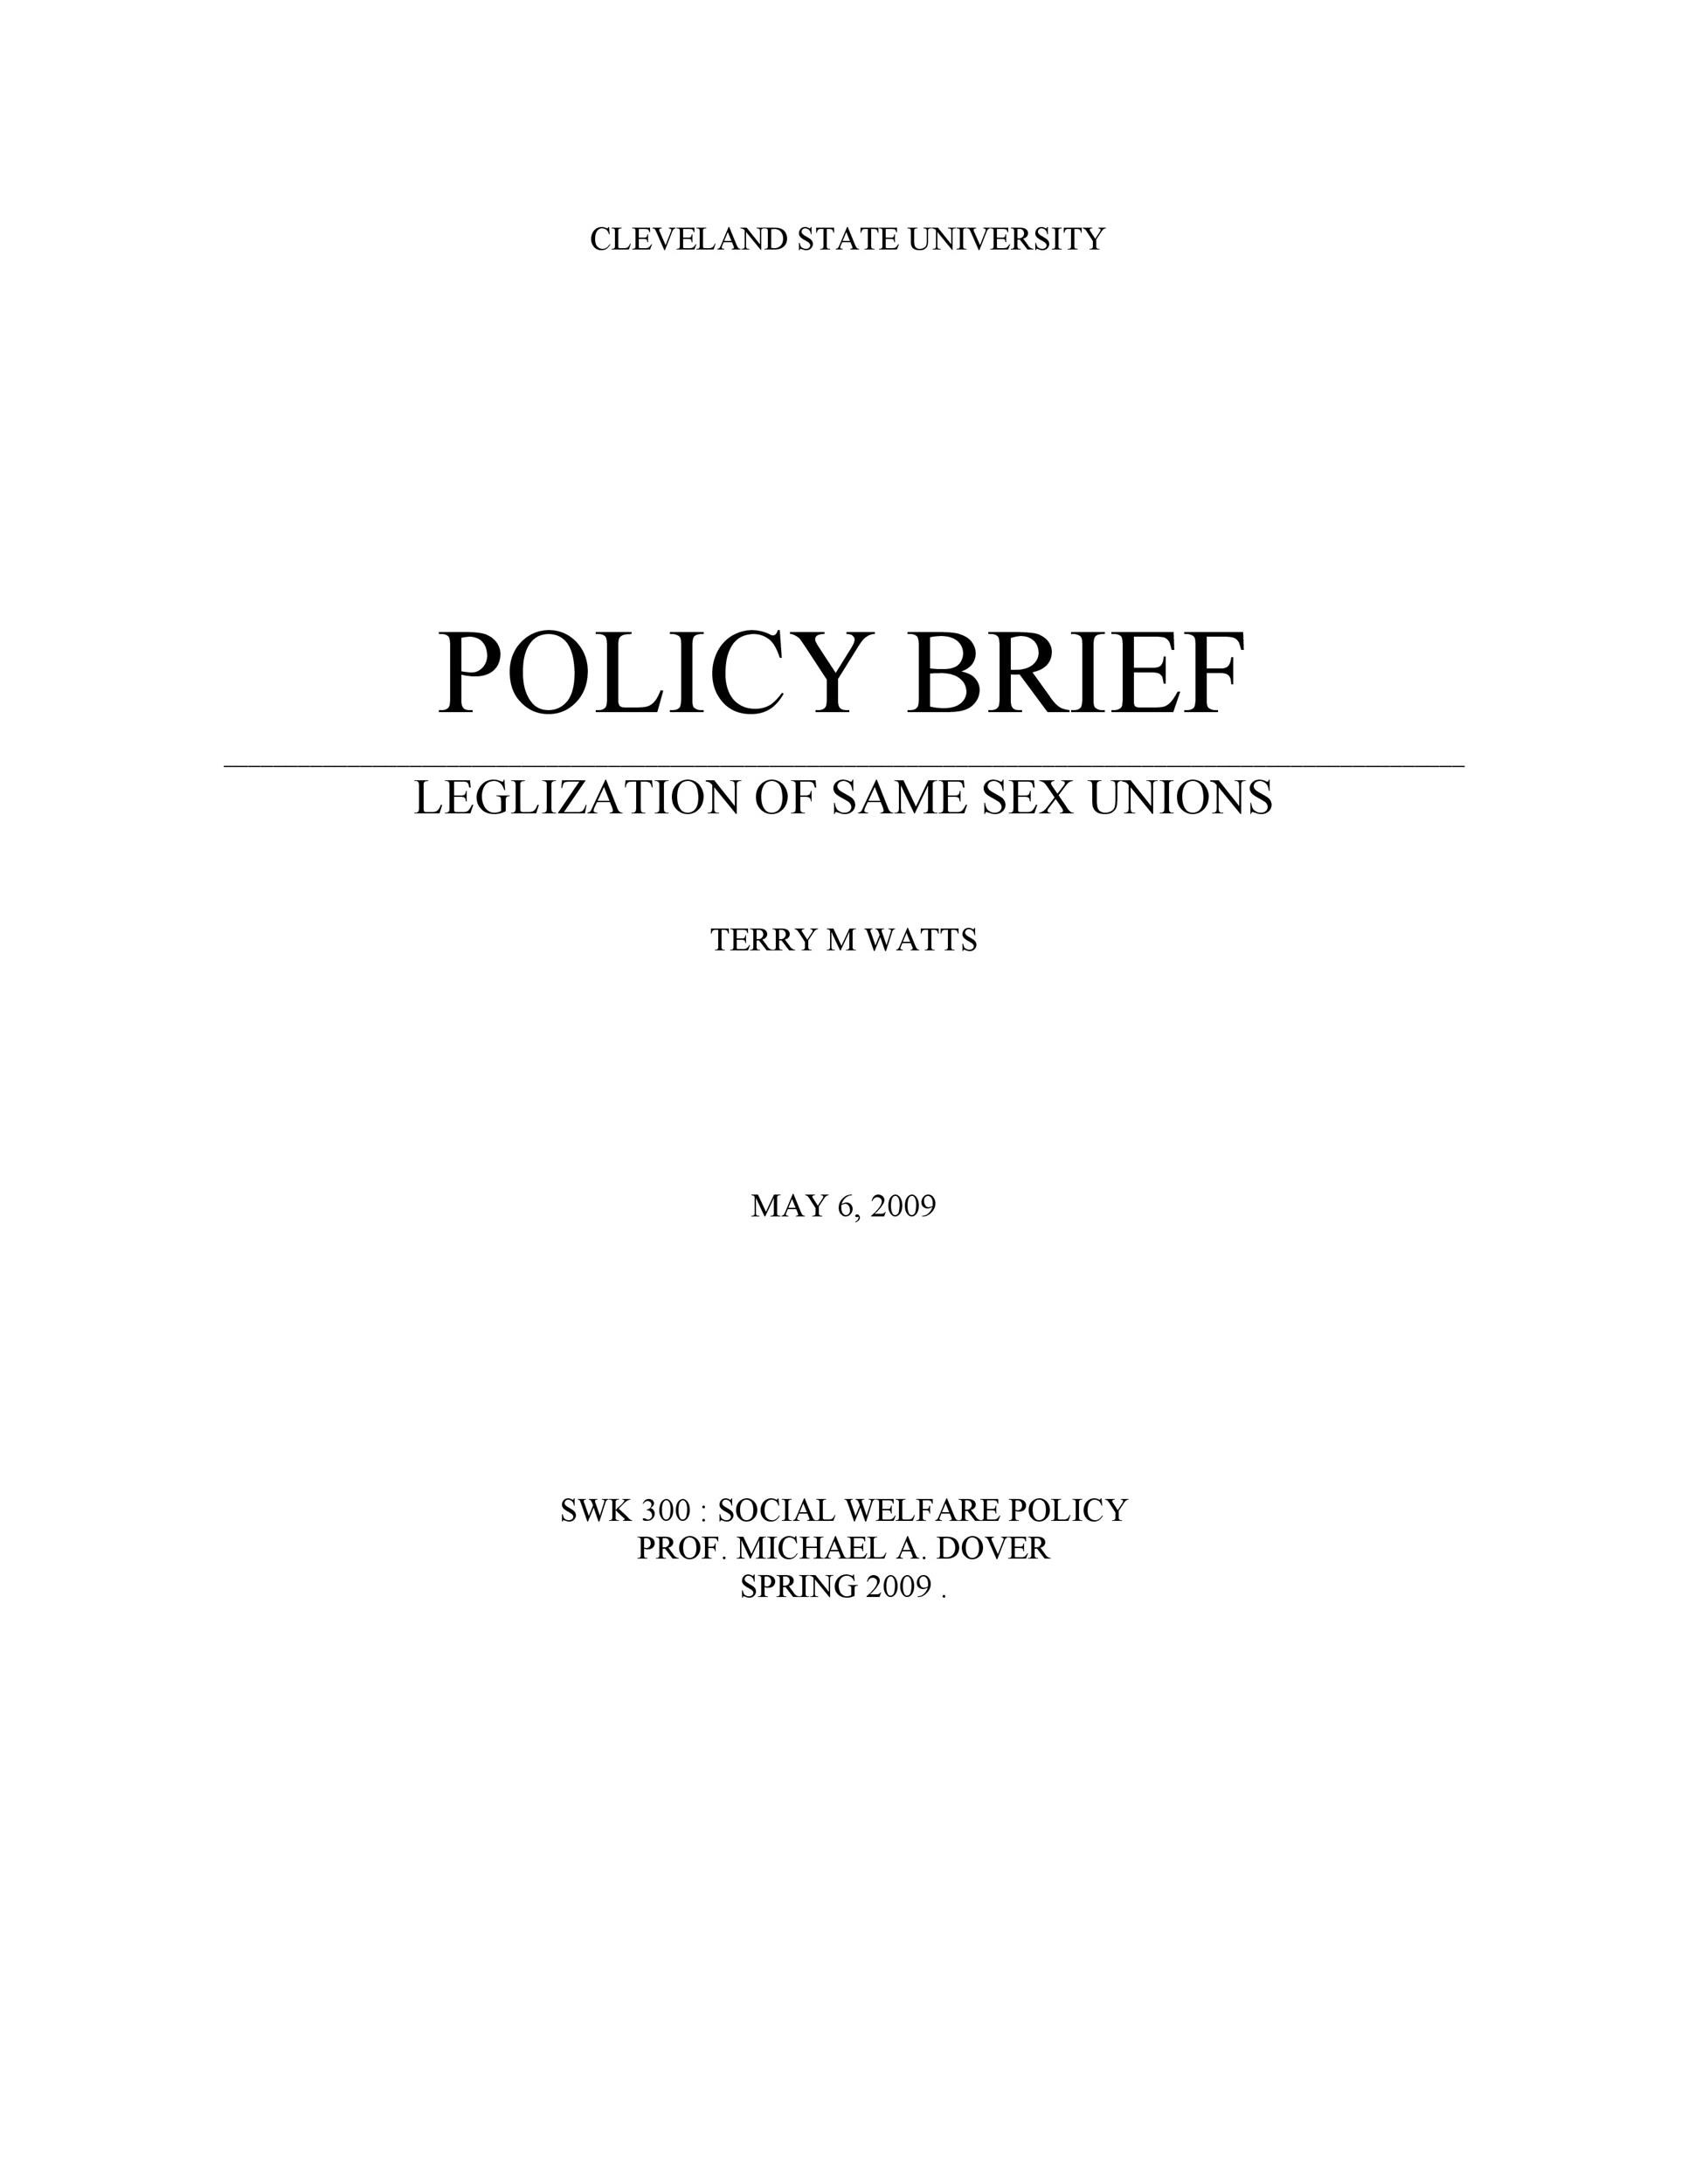 Free policy brief template 11